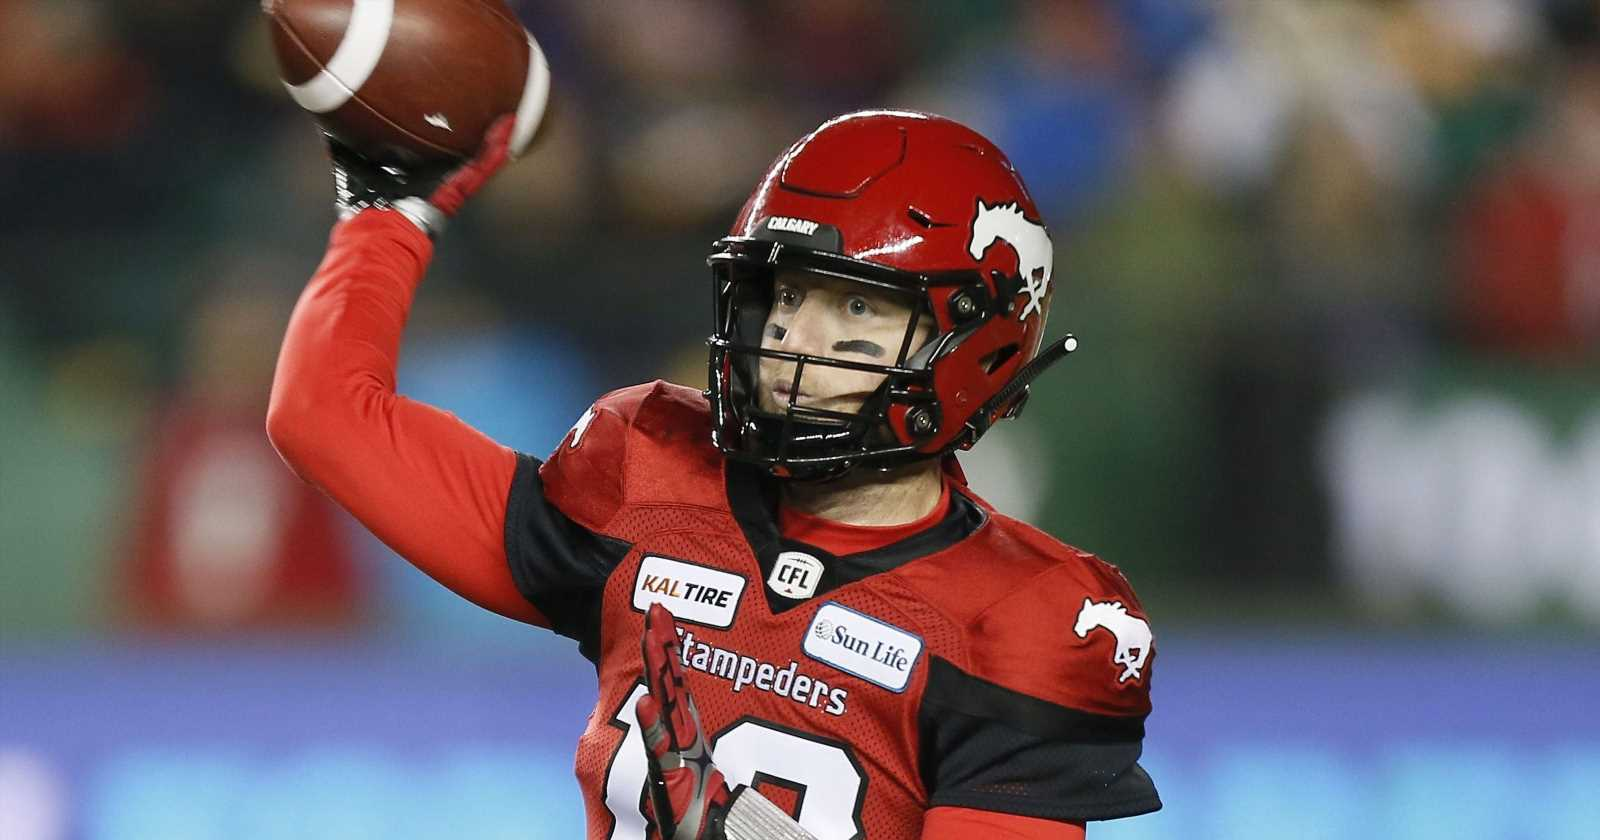 Hamilton Tiger-Cats at Calgary Stampeders odds, picks and best bets